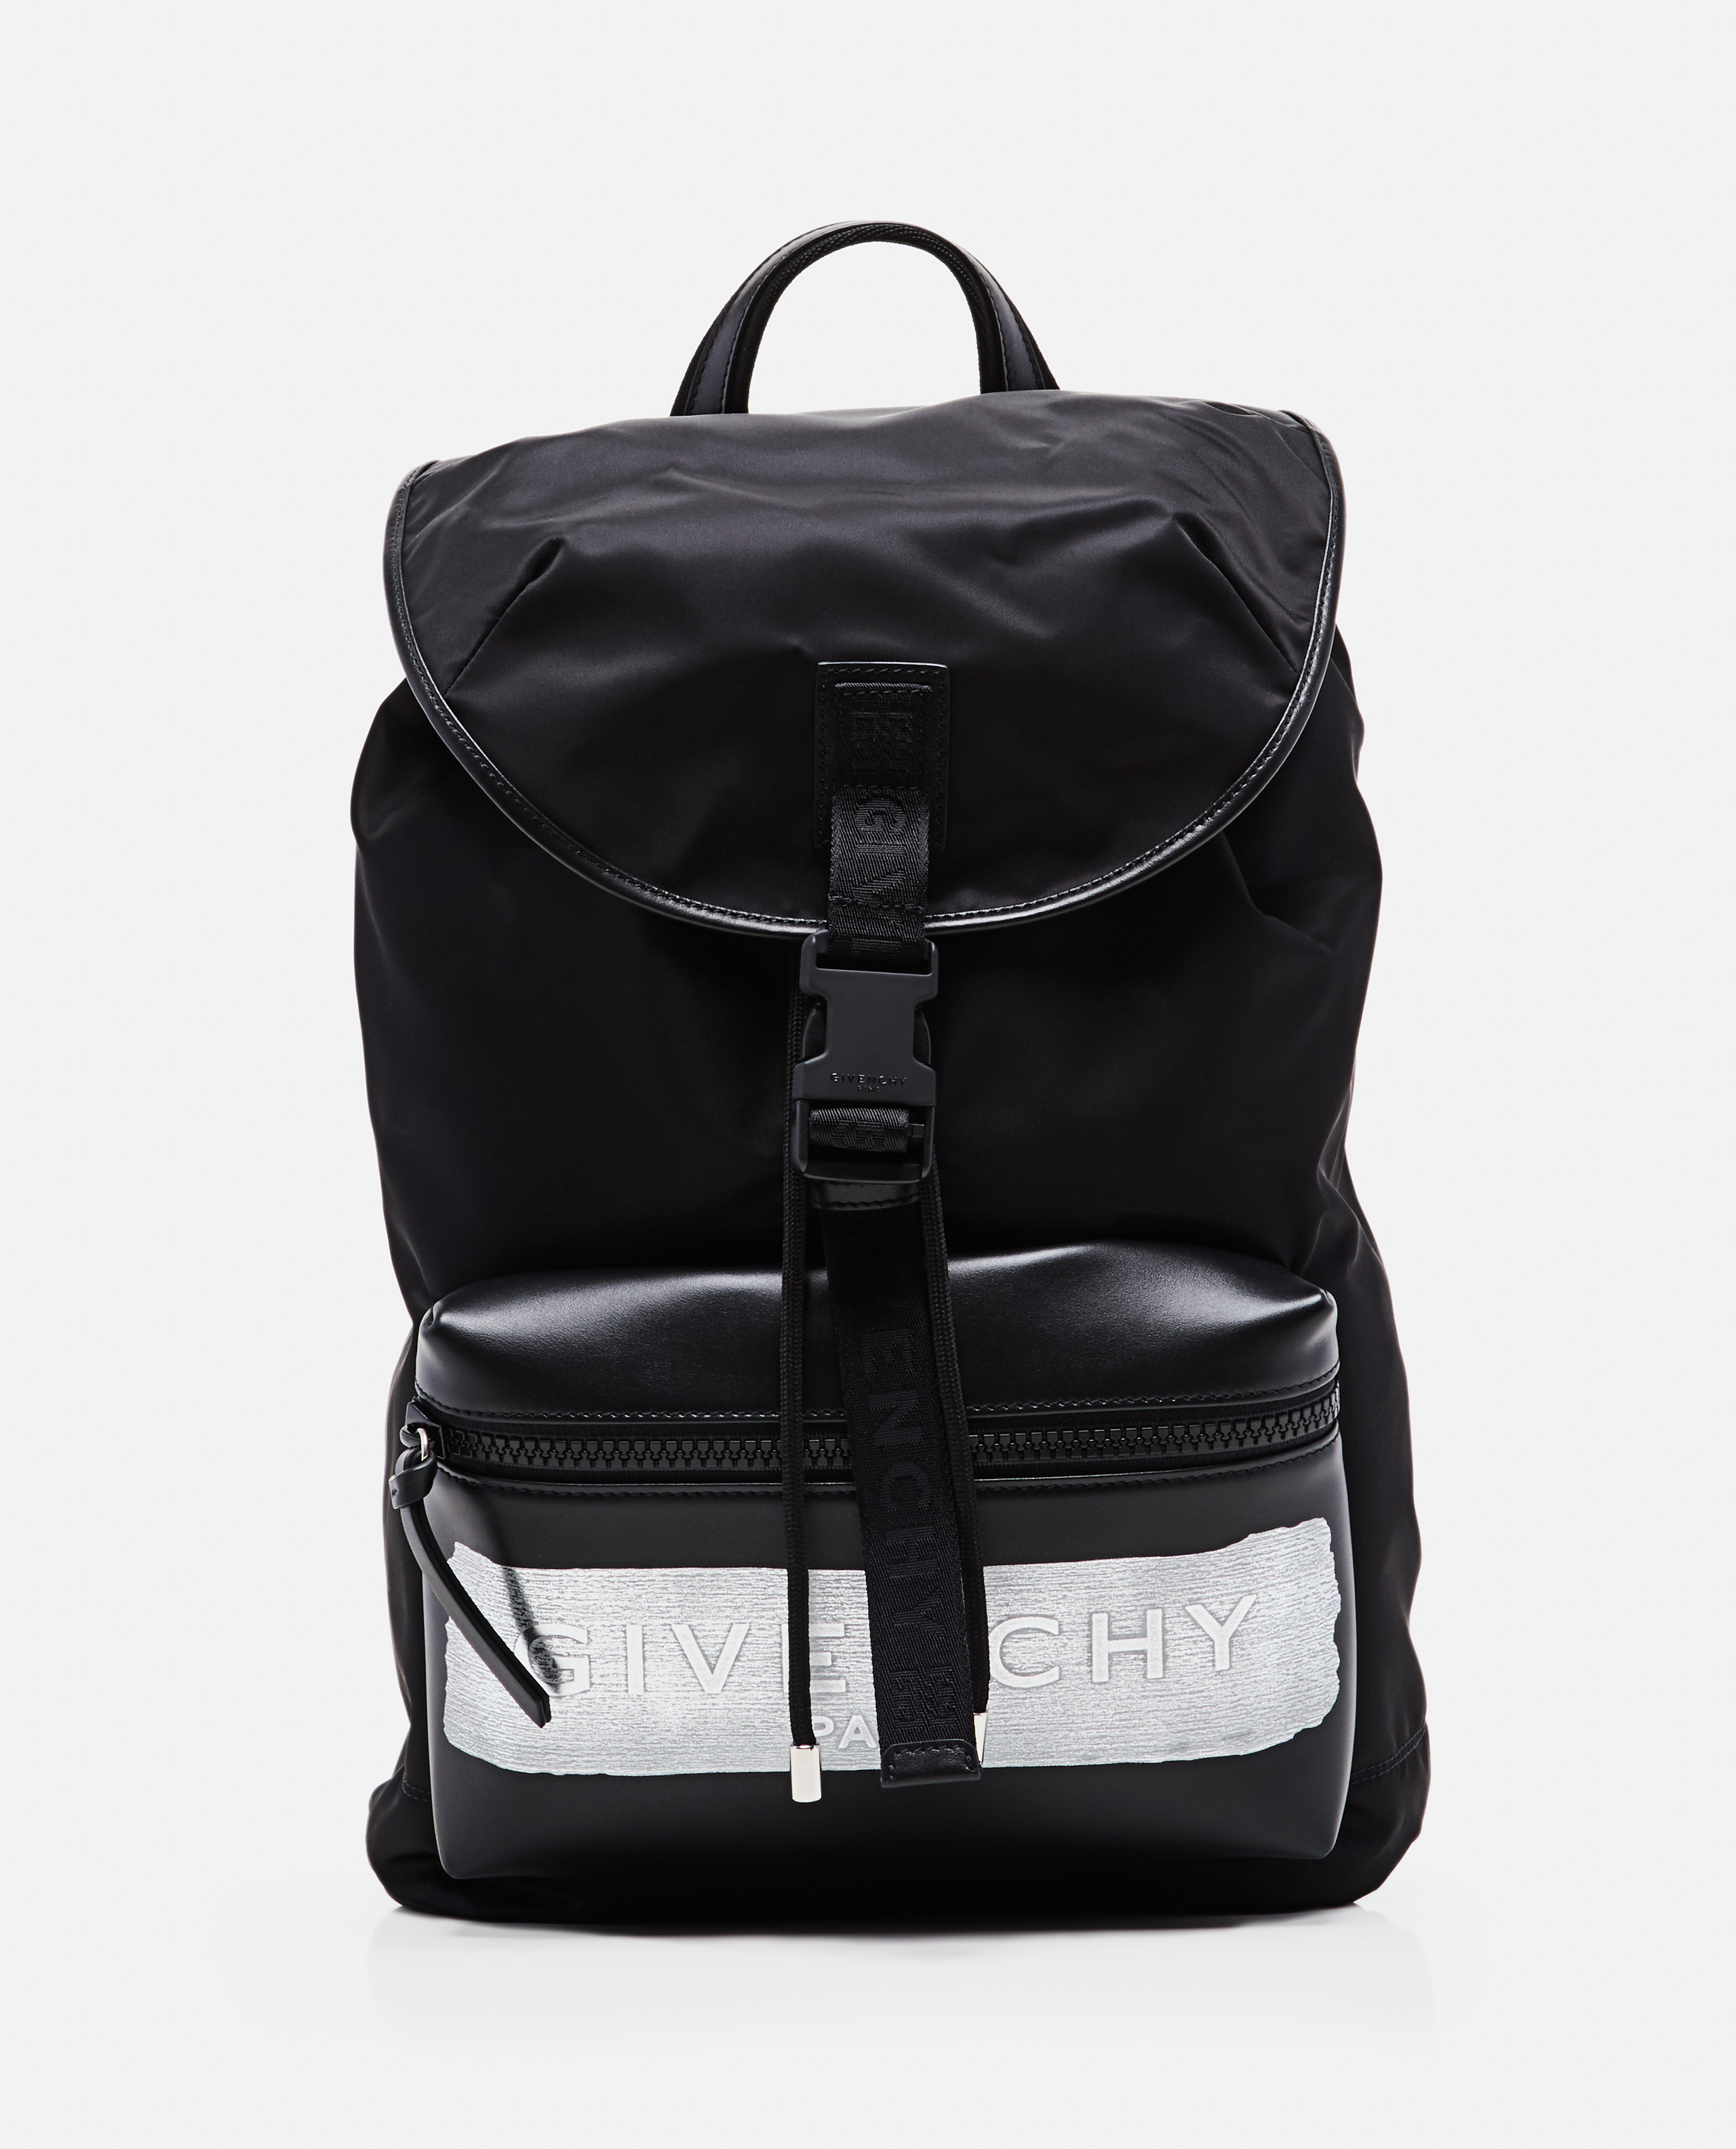 Givenchy Light 3 Nylon Backpack In Black